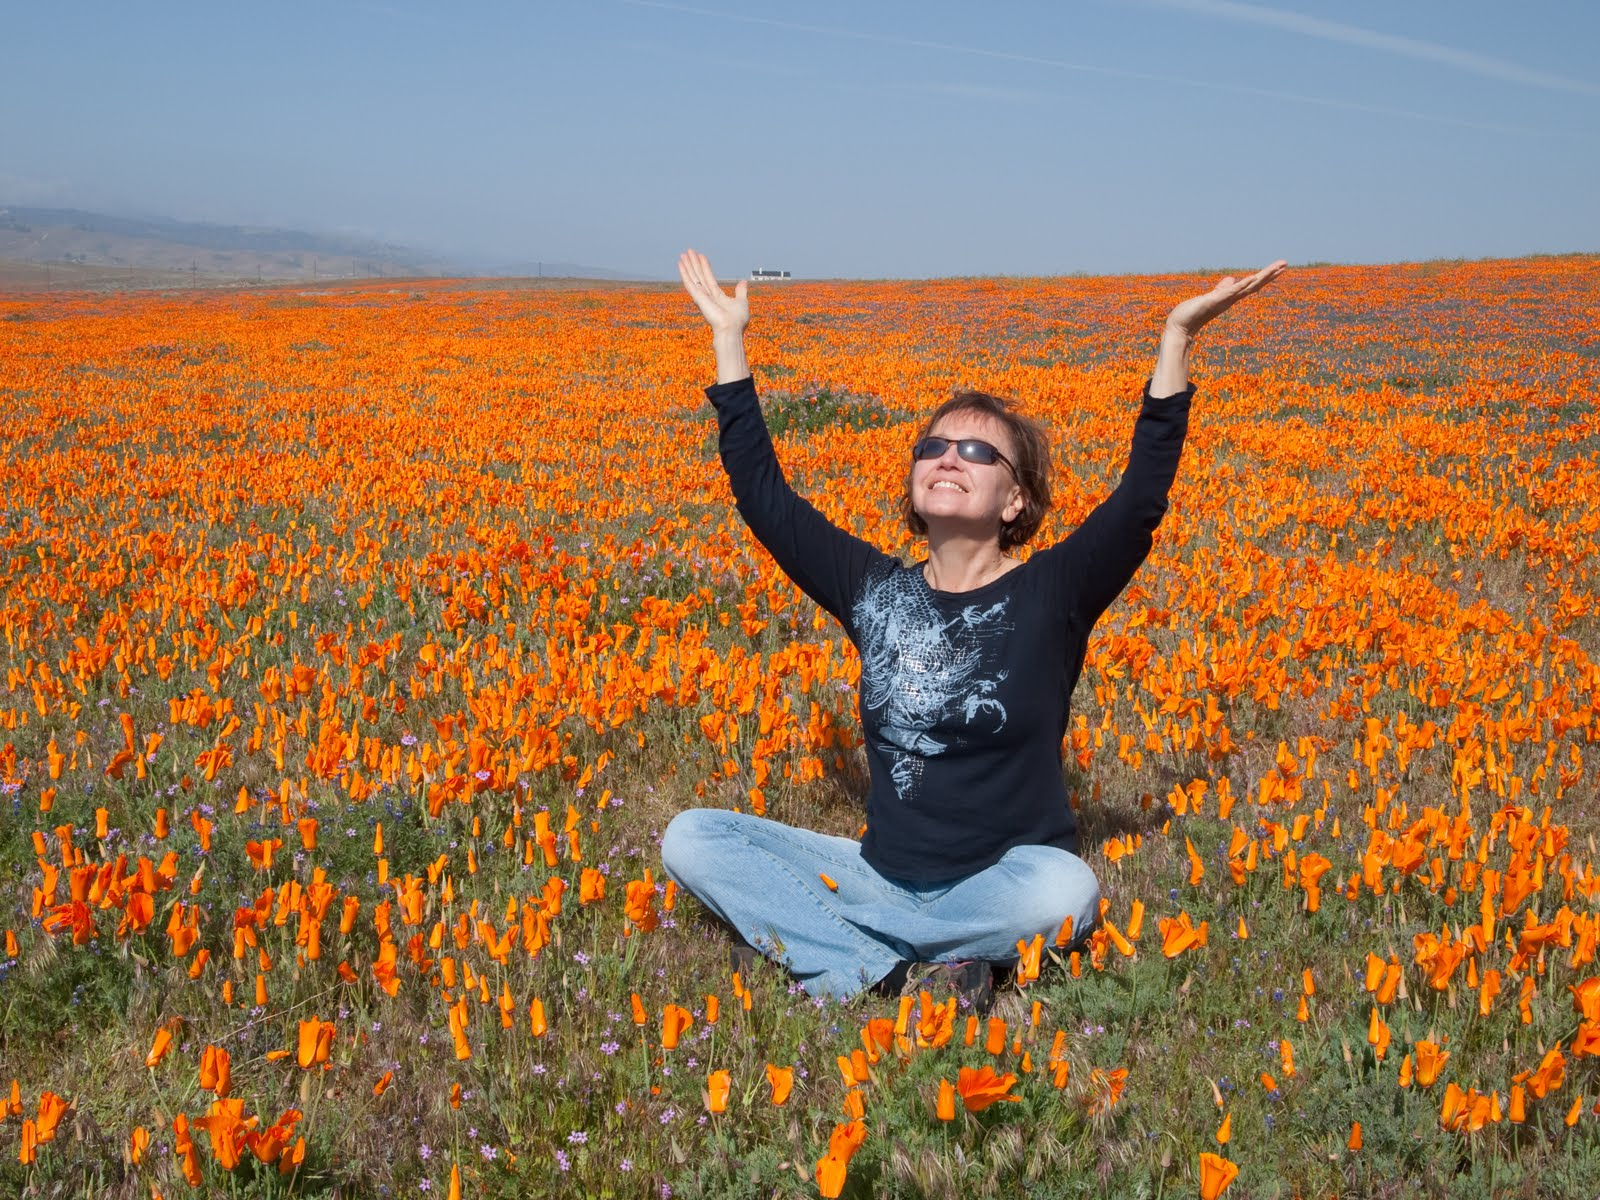 Enjoying wildflower display in Antelope Valley